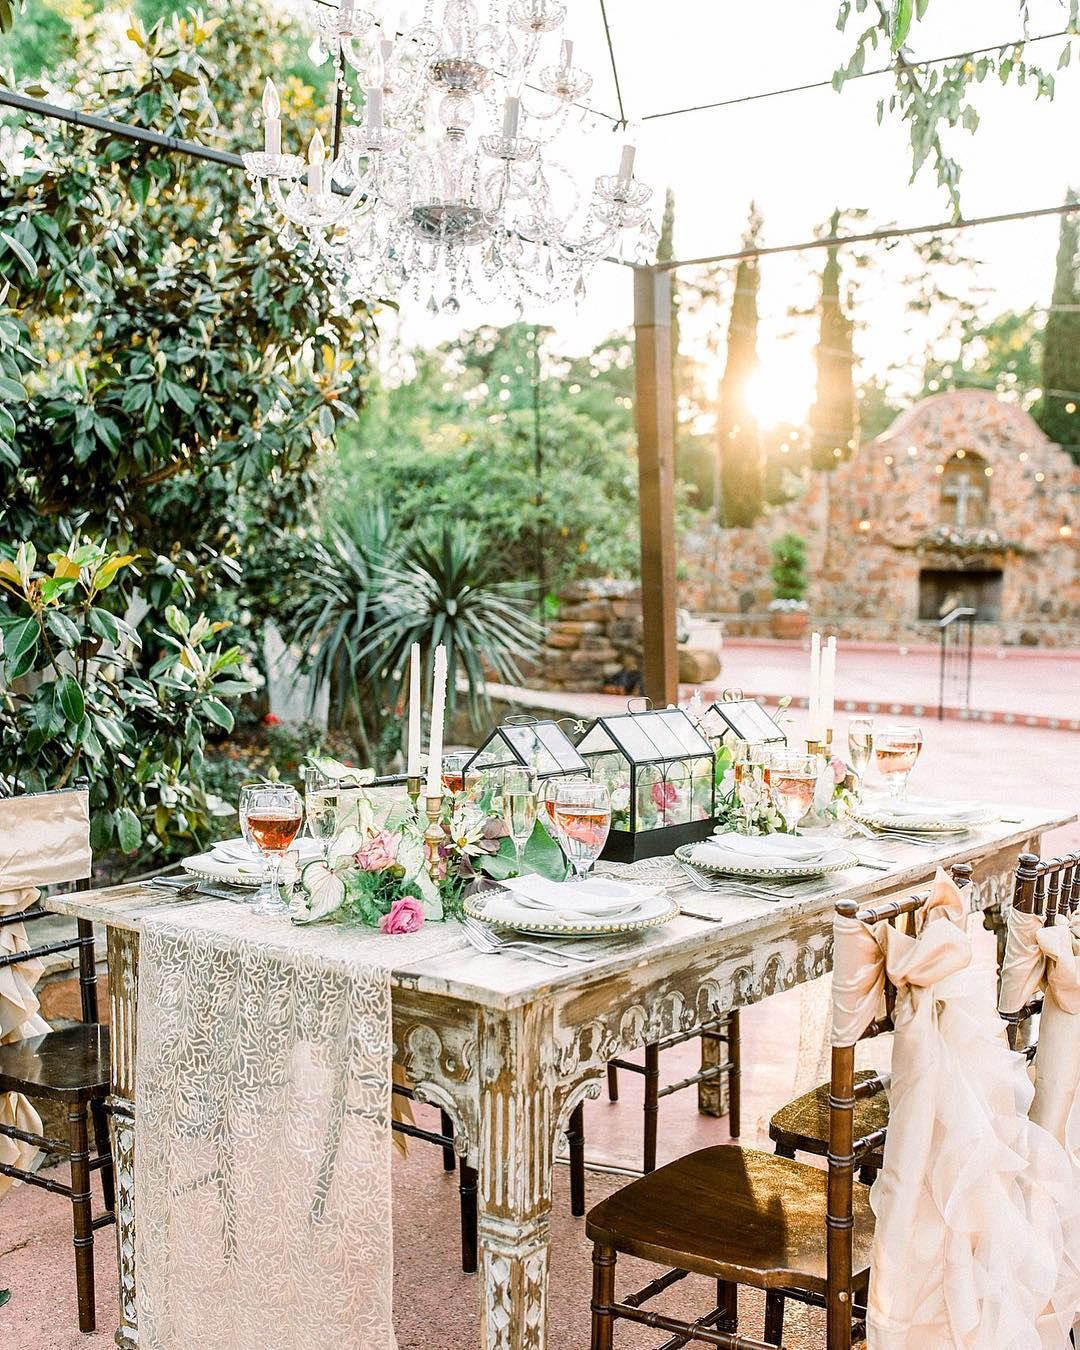 Top Wedding Venues In Houston Tx Wedding Venue Houston Outdoor Wedding Venues Texas Outdoor Wedding Venues